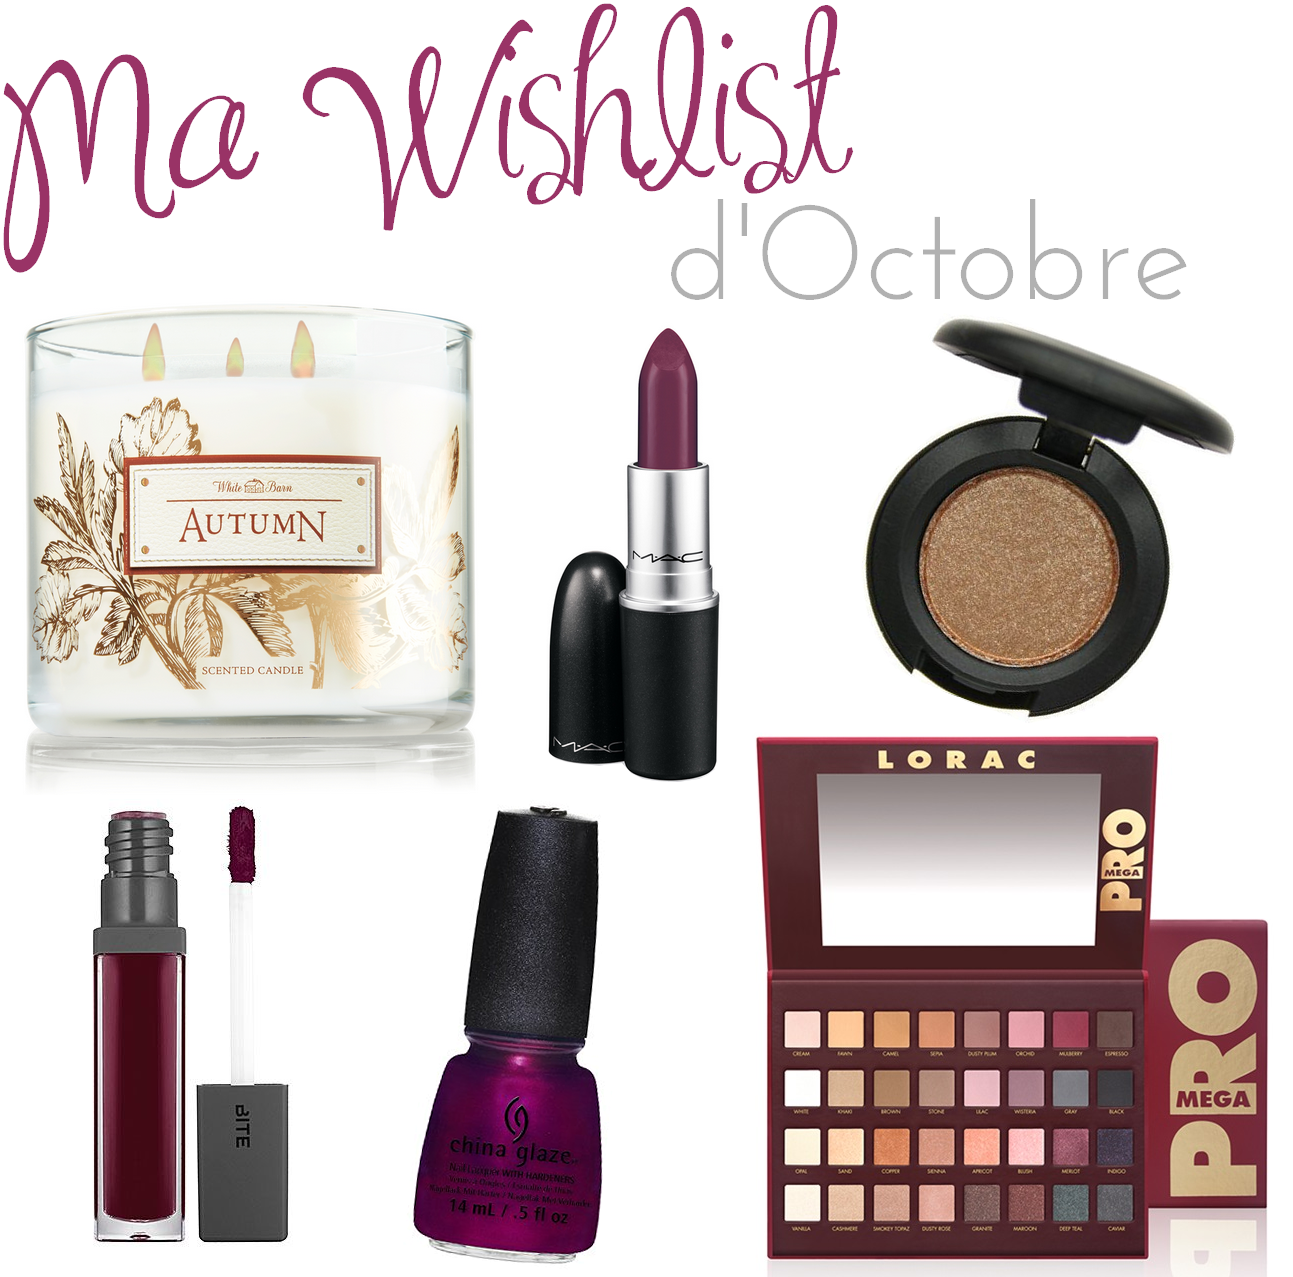 http://www.dreamingsmoothly.com/2014/10/ma-wishlist-doctobre.html